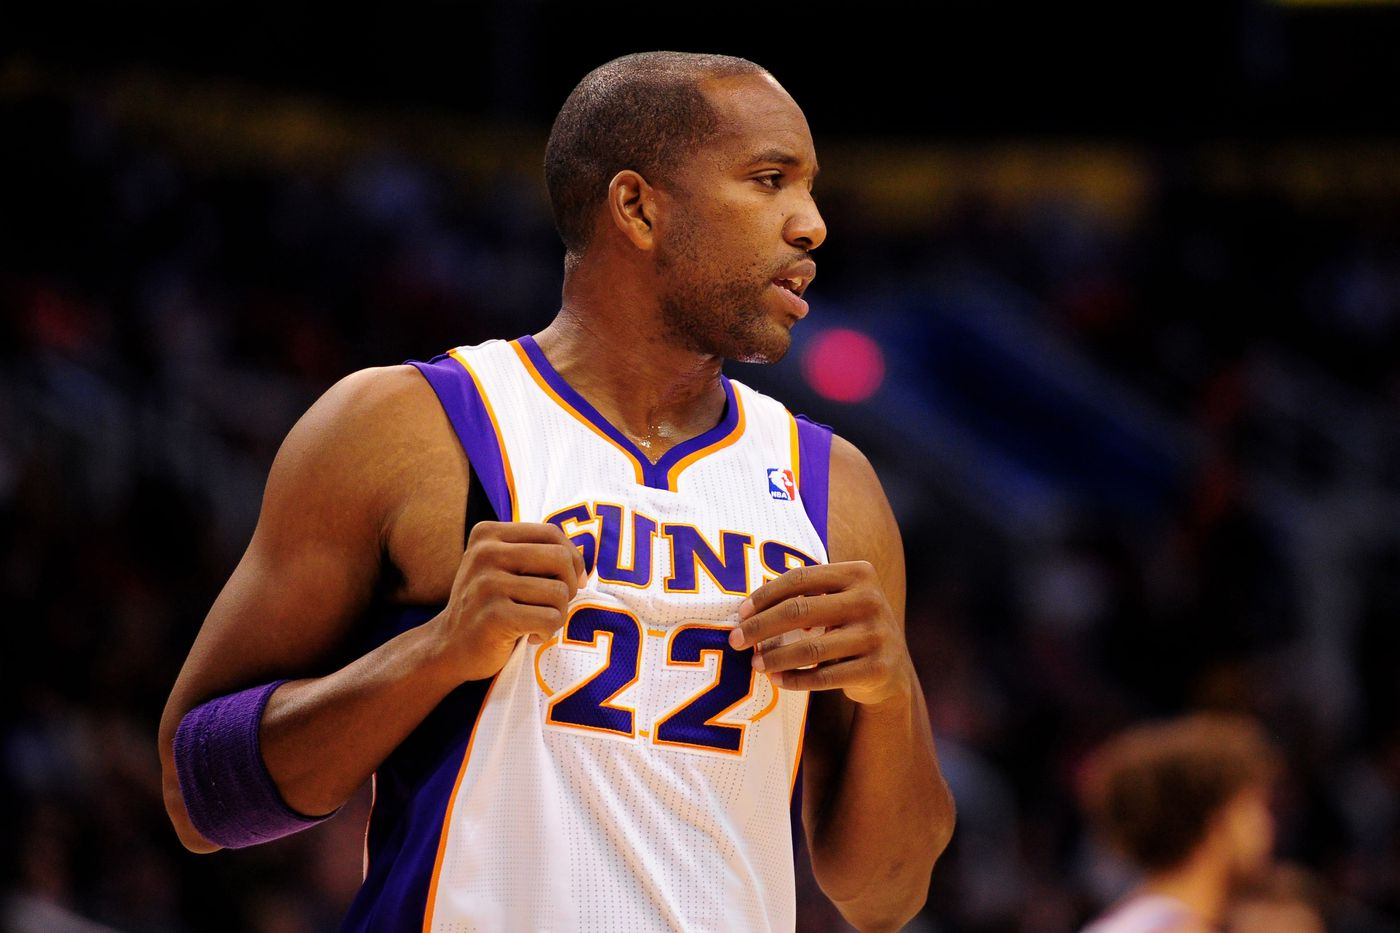 Michael Redd to announce retirement during Bucks game Wednesday